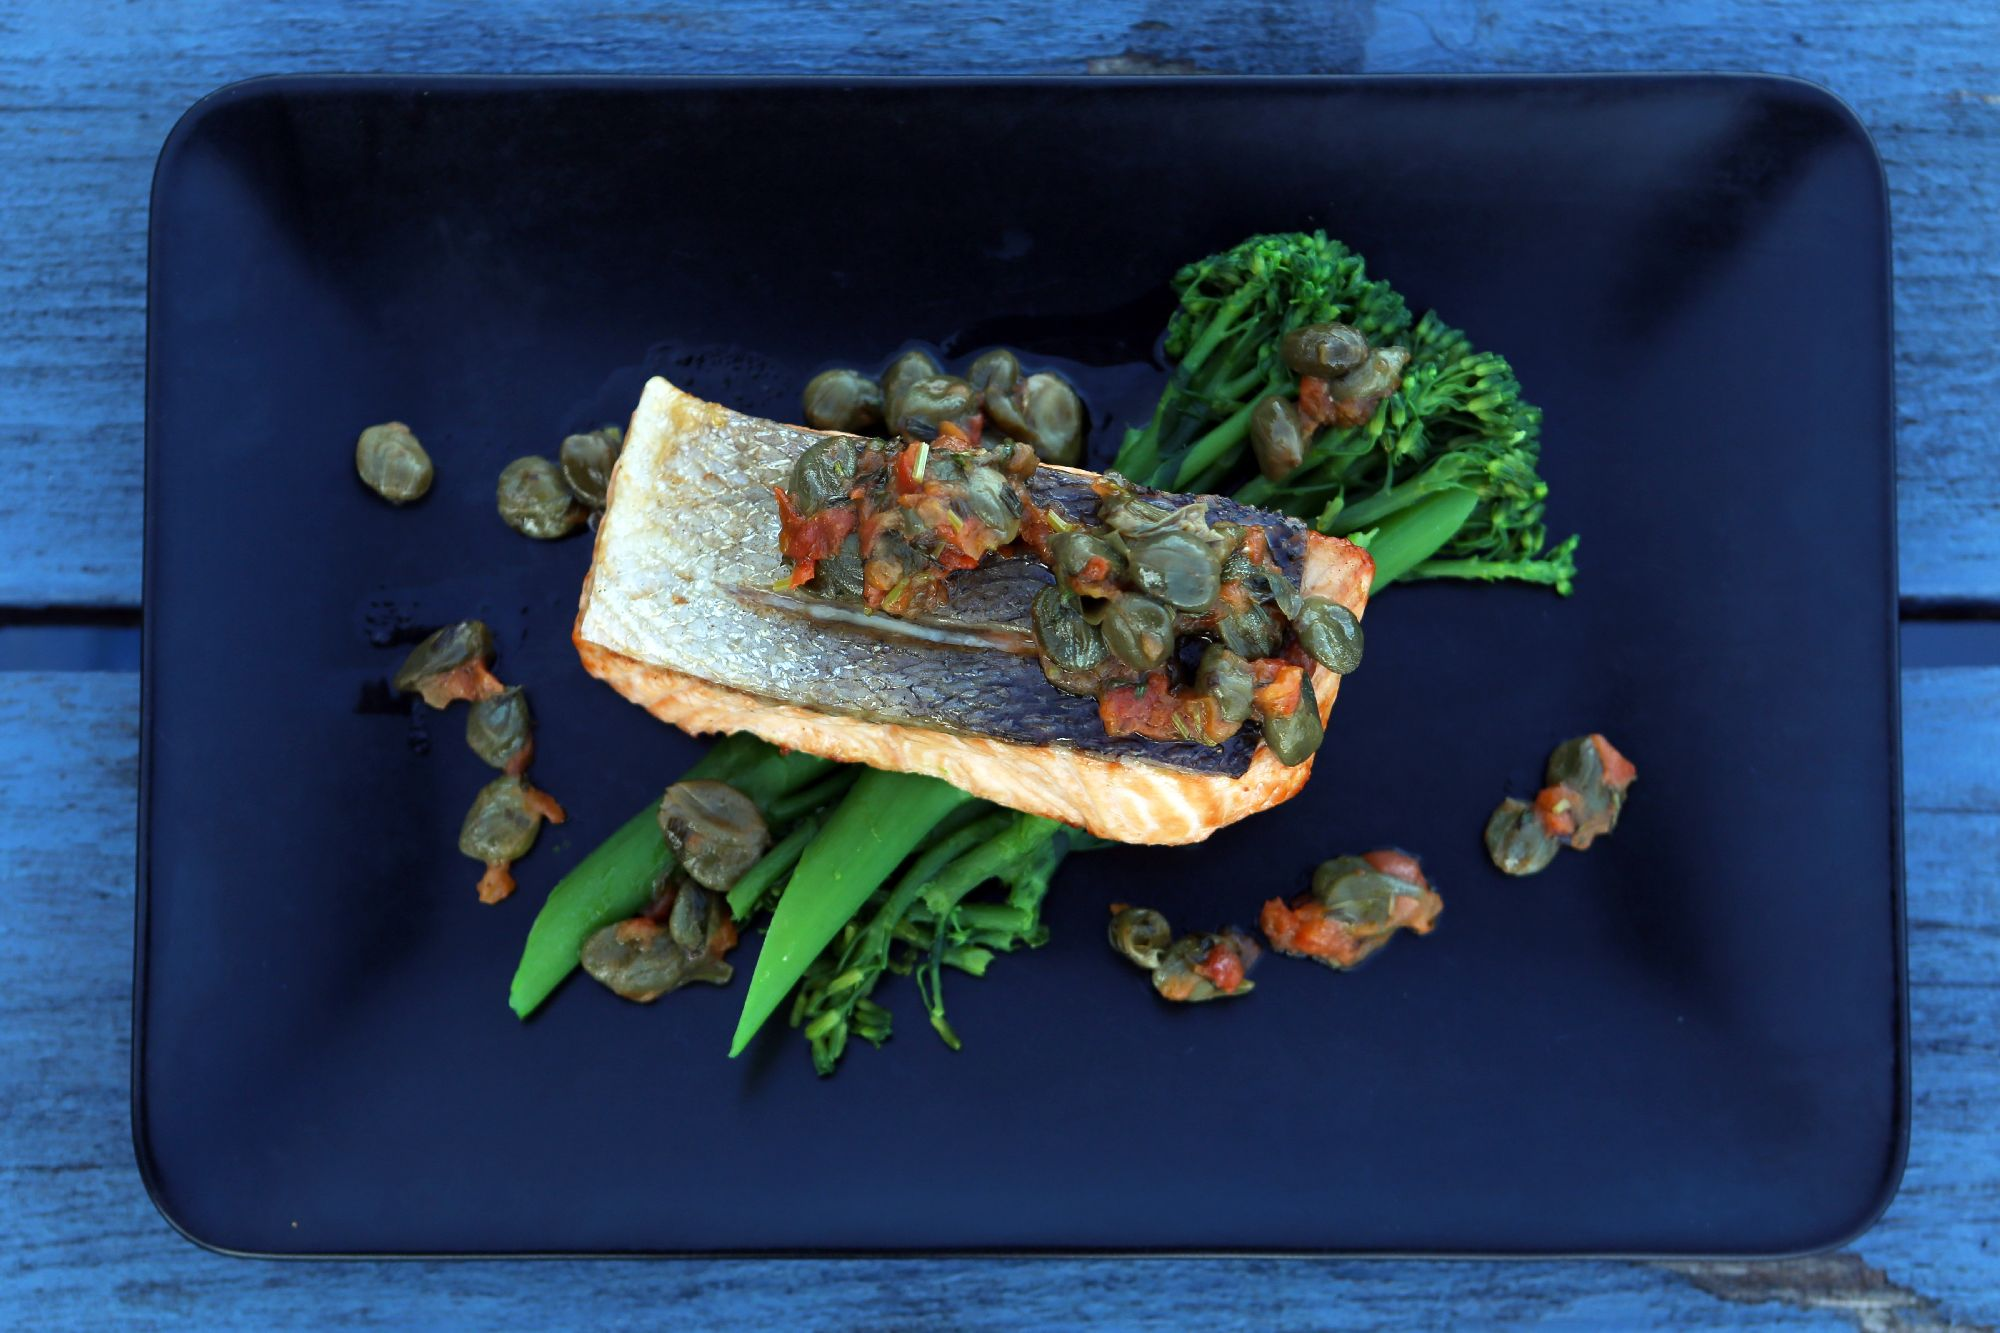 Salmon Pan-fried, long stem broccoli, tomato and caper vinaigrette